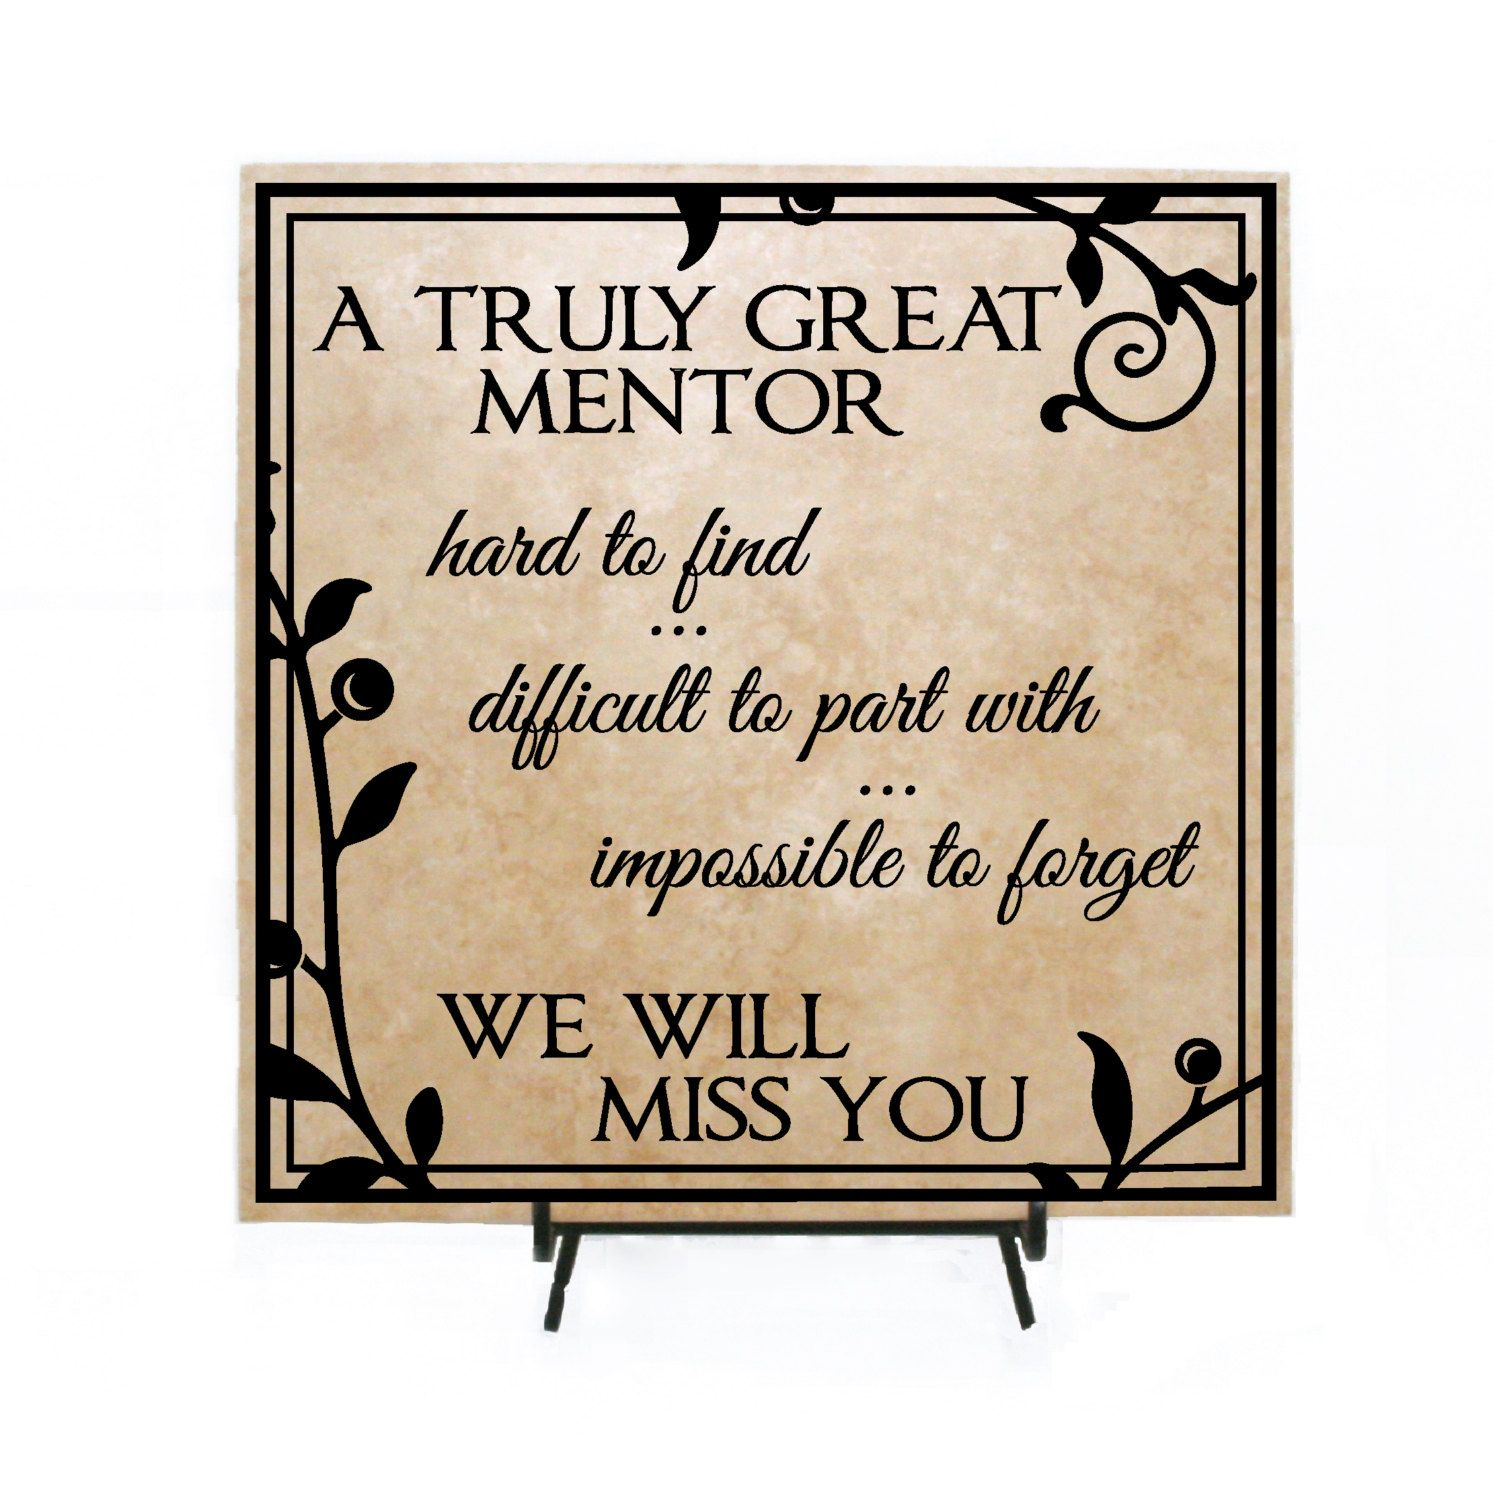 a truly great mentor personalized retirement gift thank you appreciation gift thank